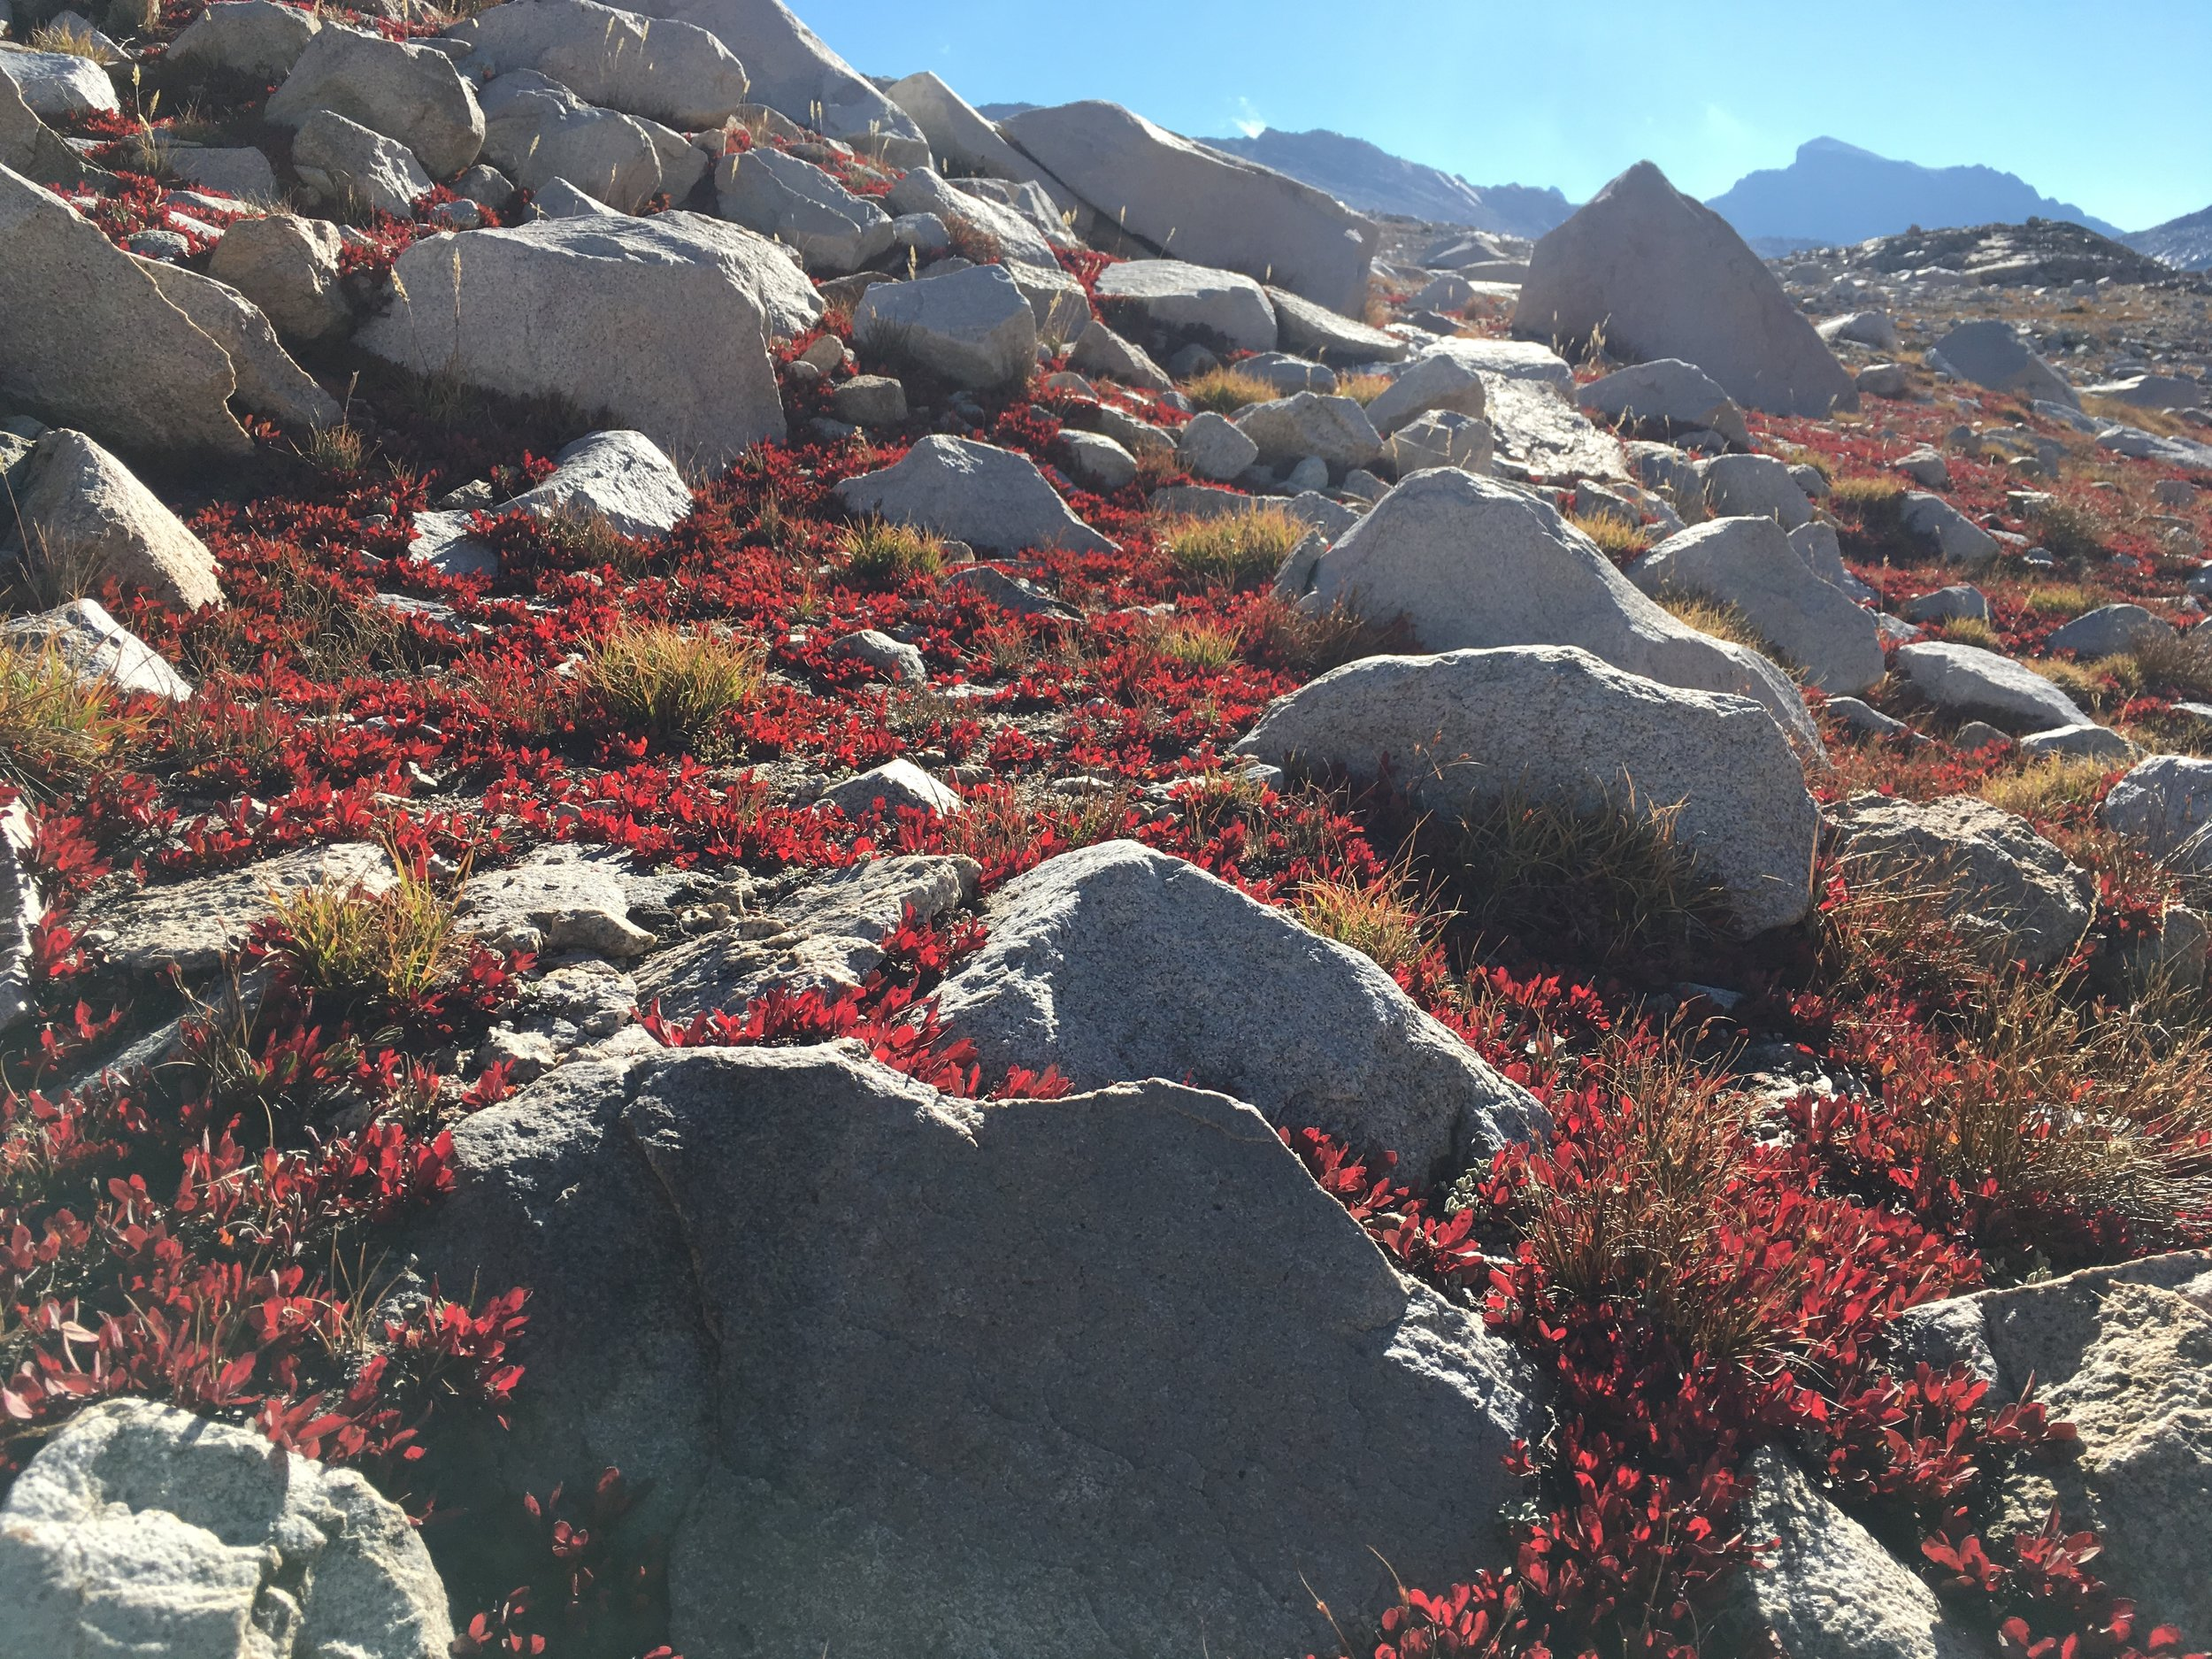 Granite boulders and backlit autumn colors between Sapphire and Wanda Lakes.